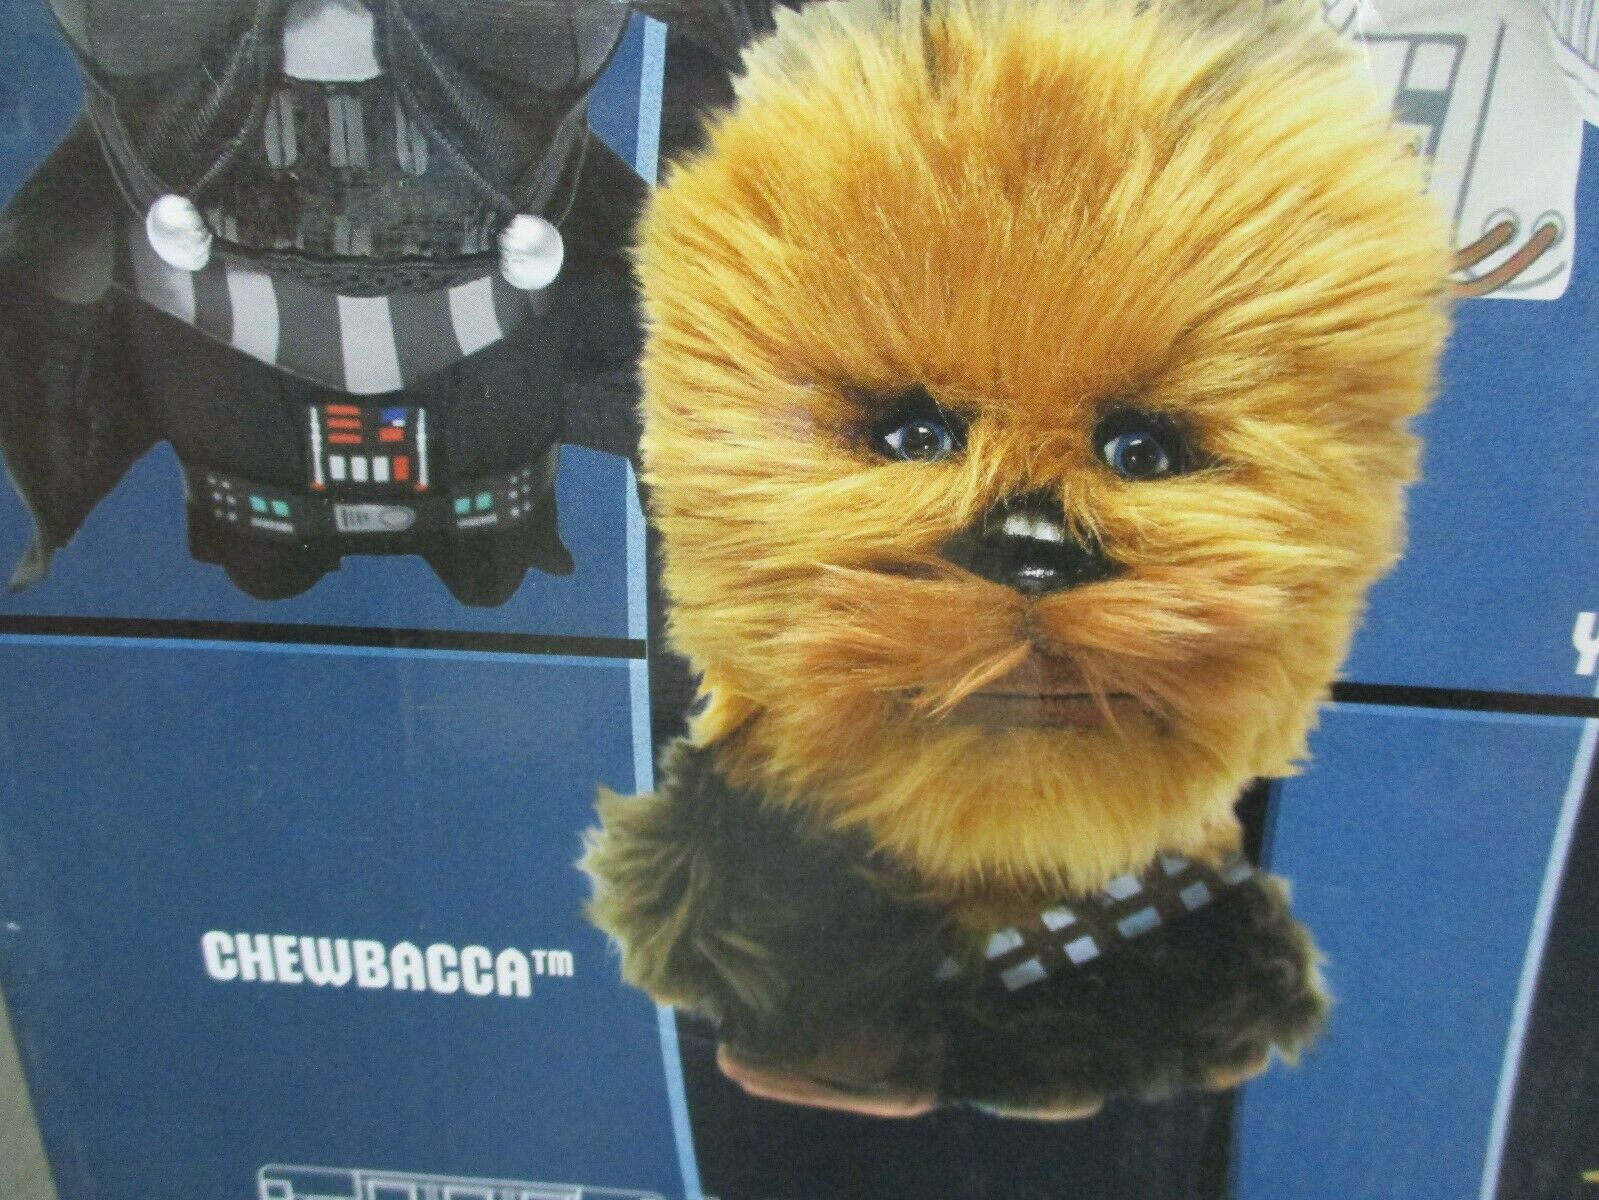 Star Wars Deluxe Talking Plush Chewbacca Underground Toys 2012 New In Box